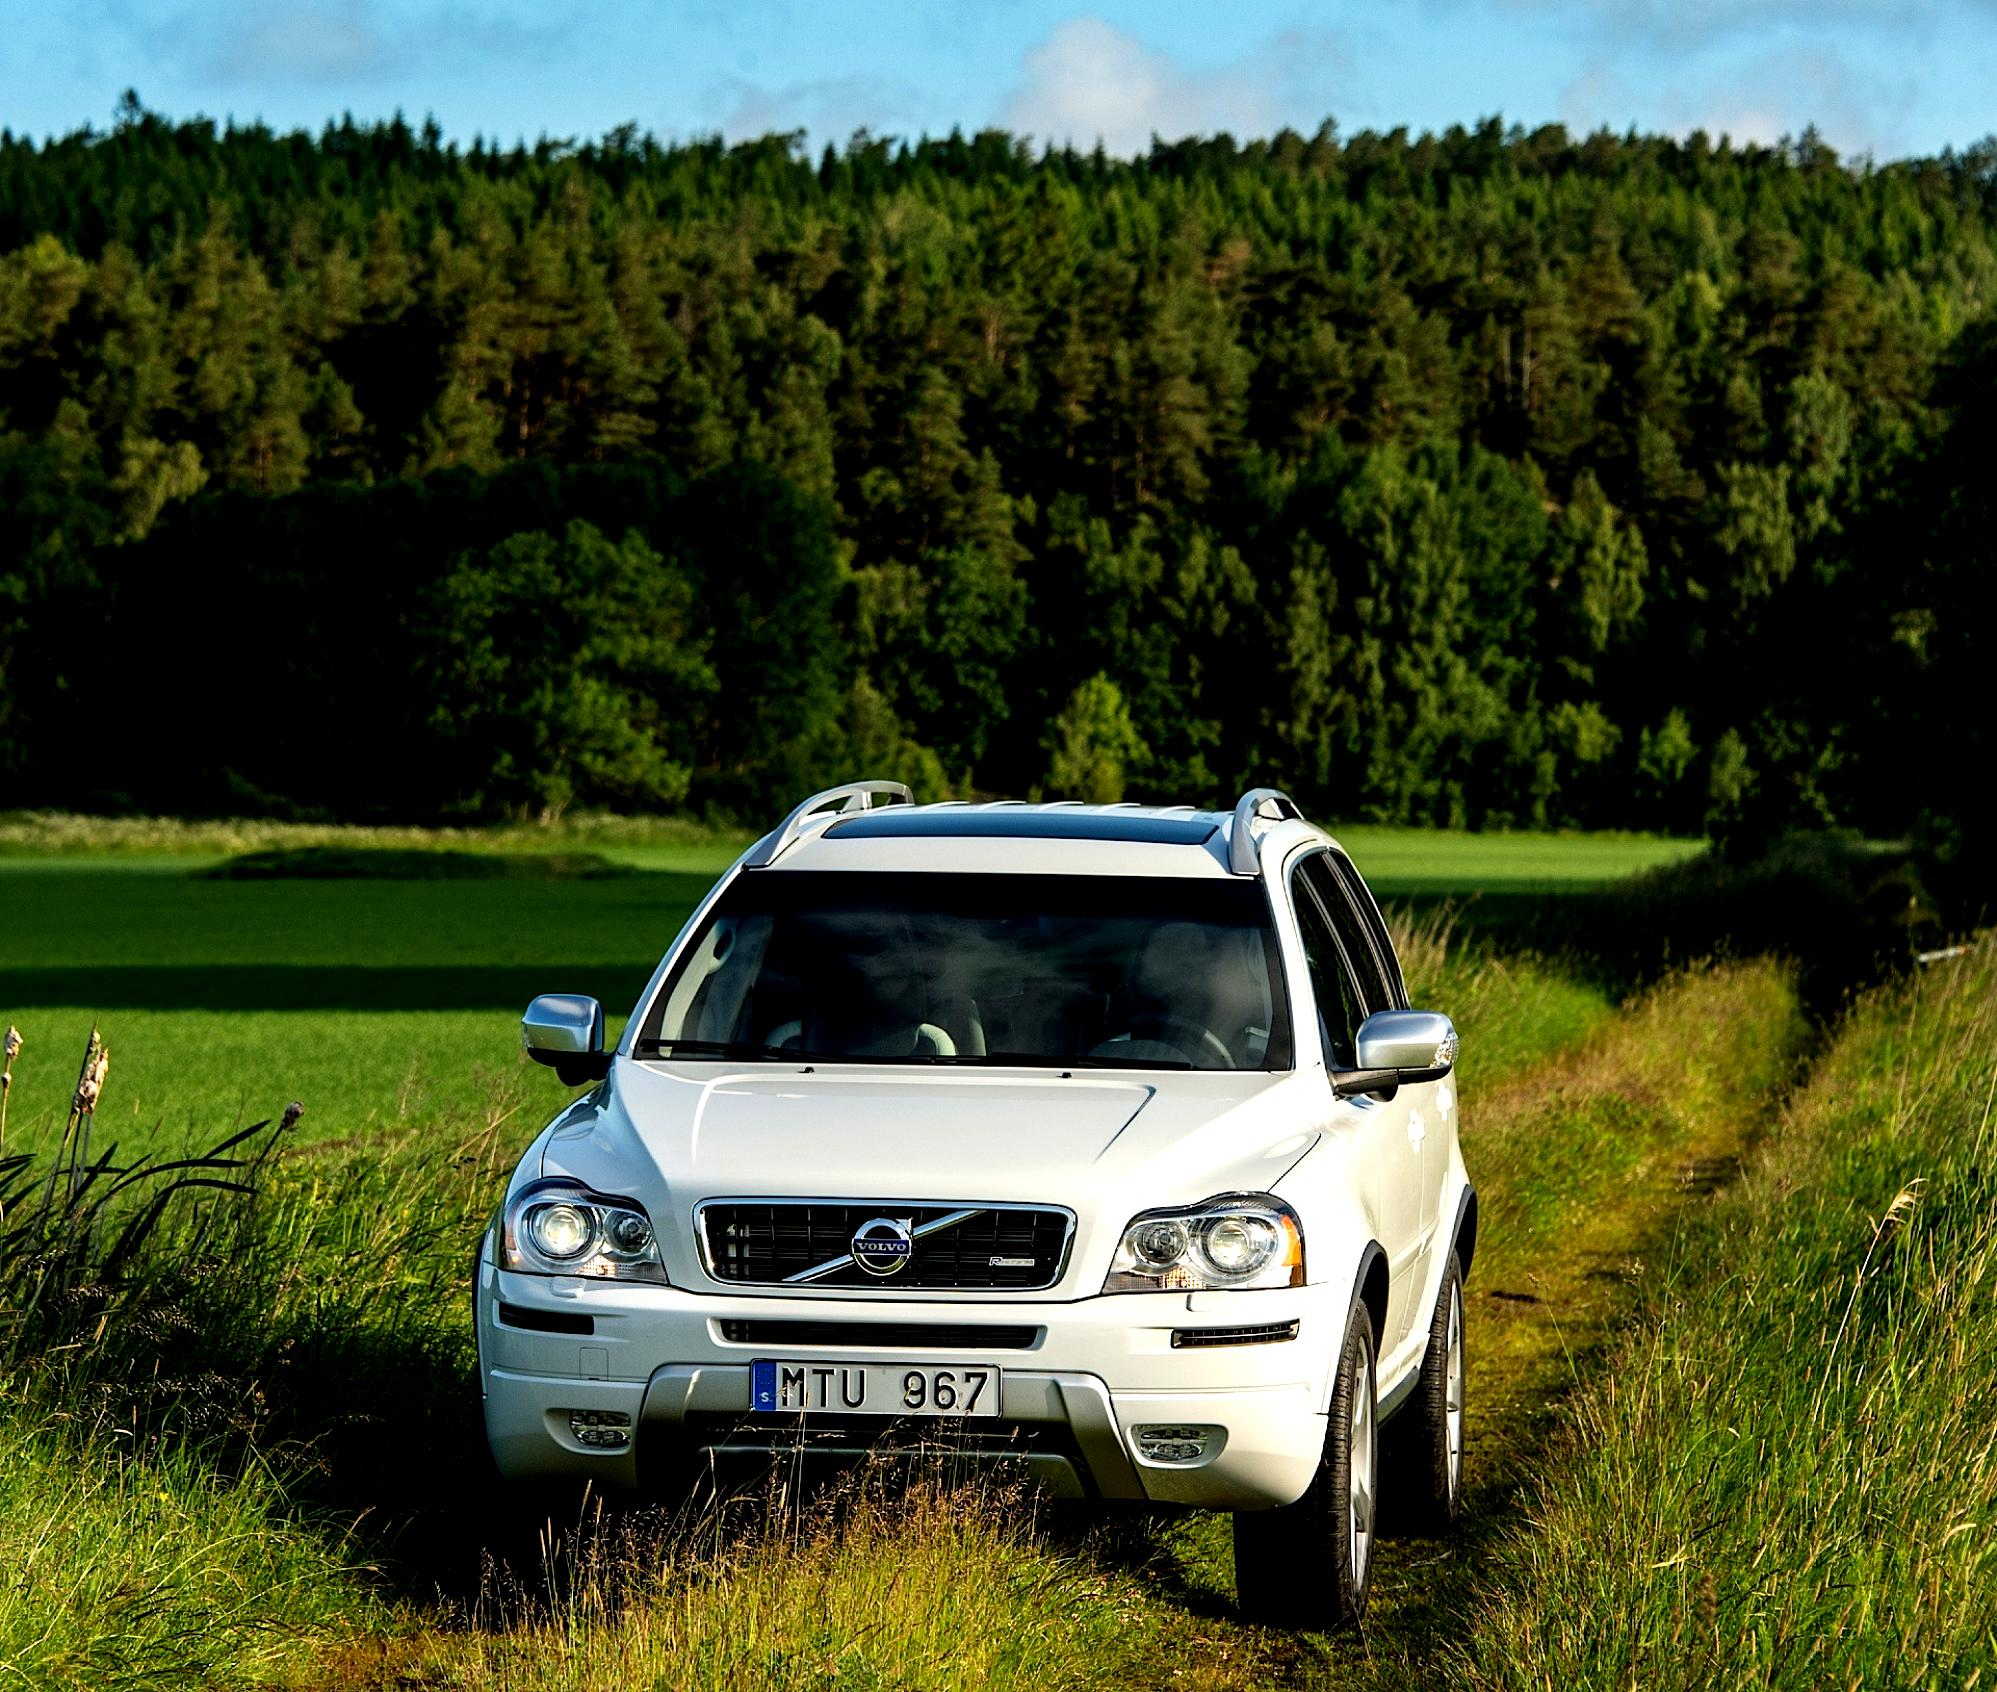 Volvo XC90 2007 On MotoImg.com